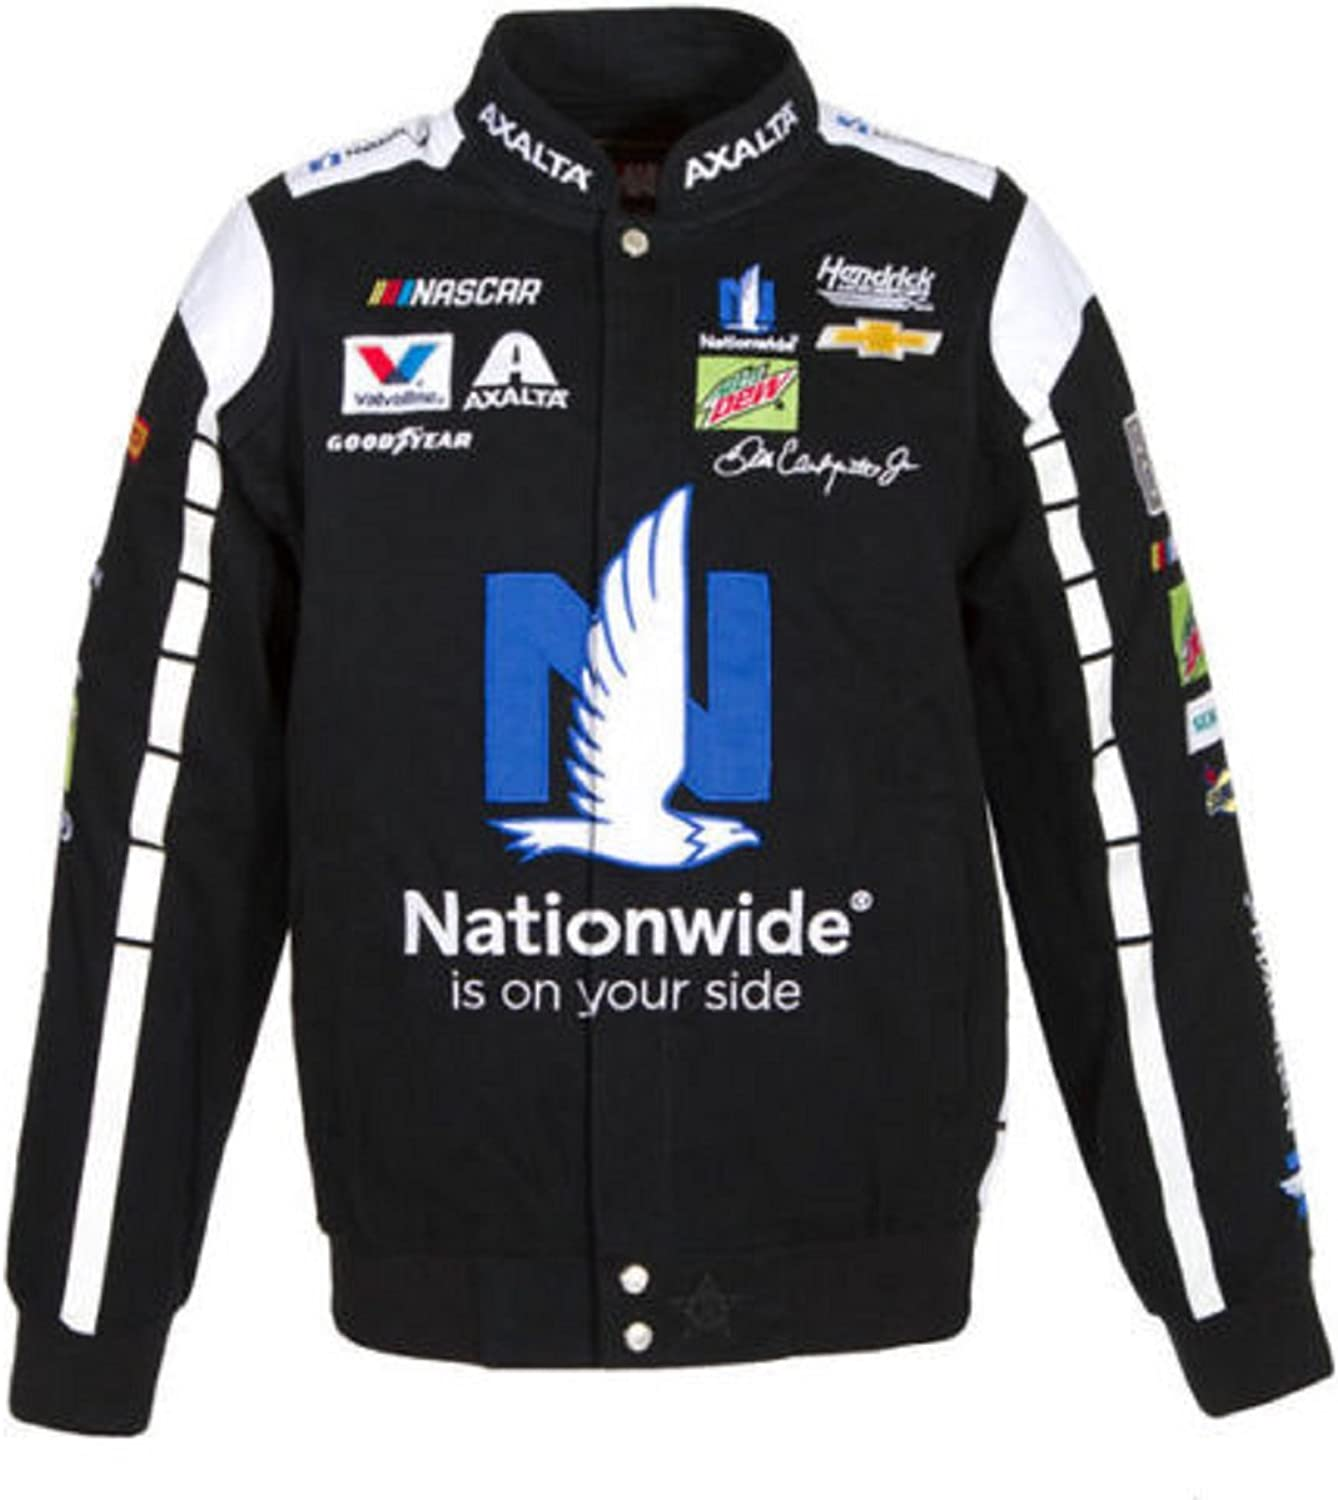 2017 Dale Earnhardt Jr. Nationwide Nascar Black Jacket Size 2XLarge